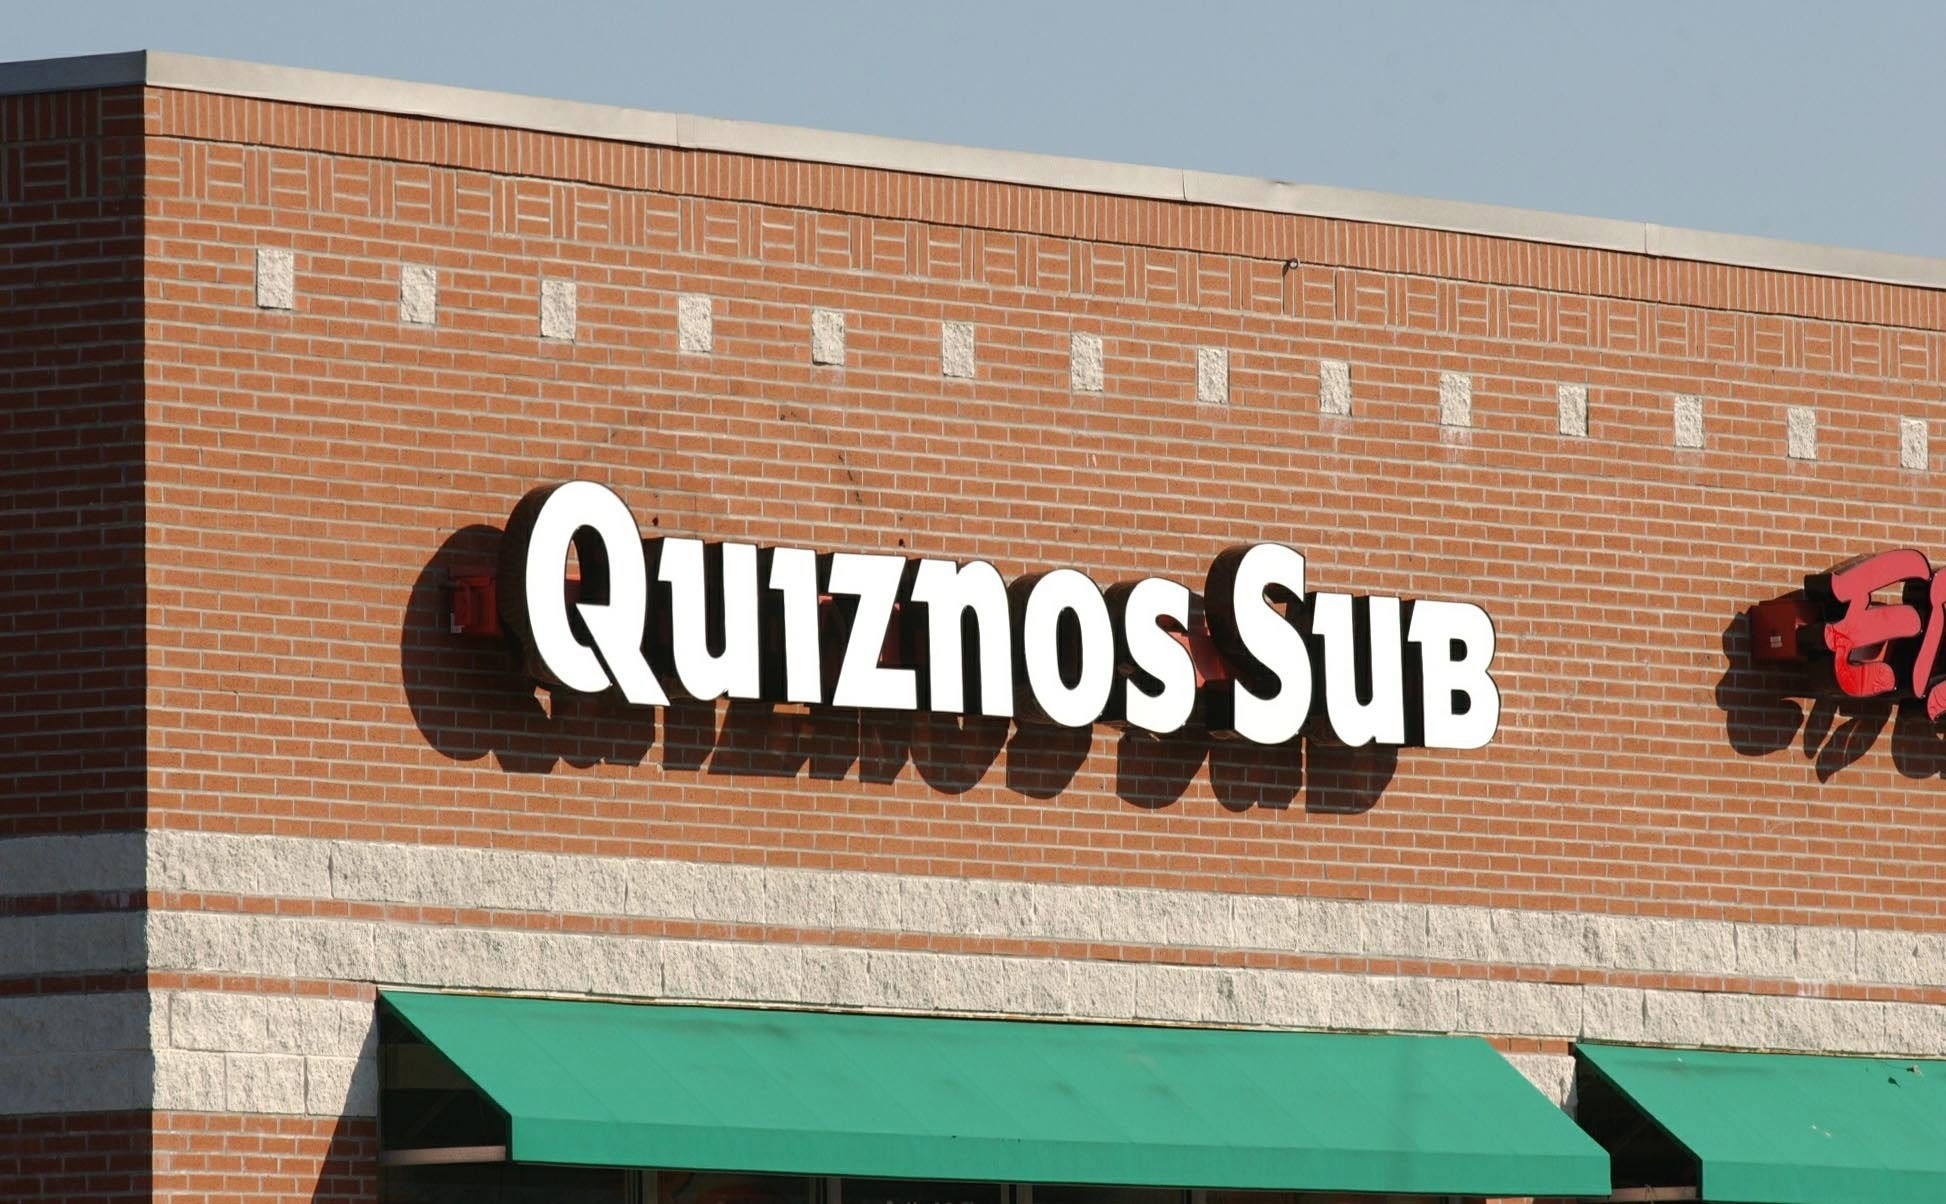 Quiznos operates restaurants in all 50 states and in 34 countries.